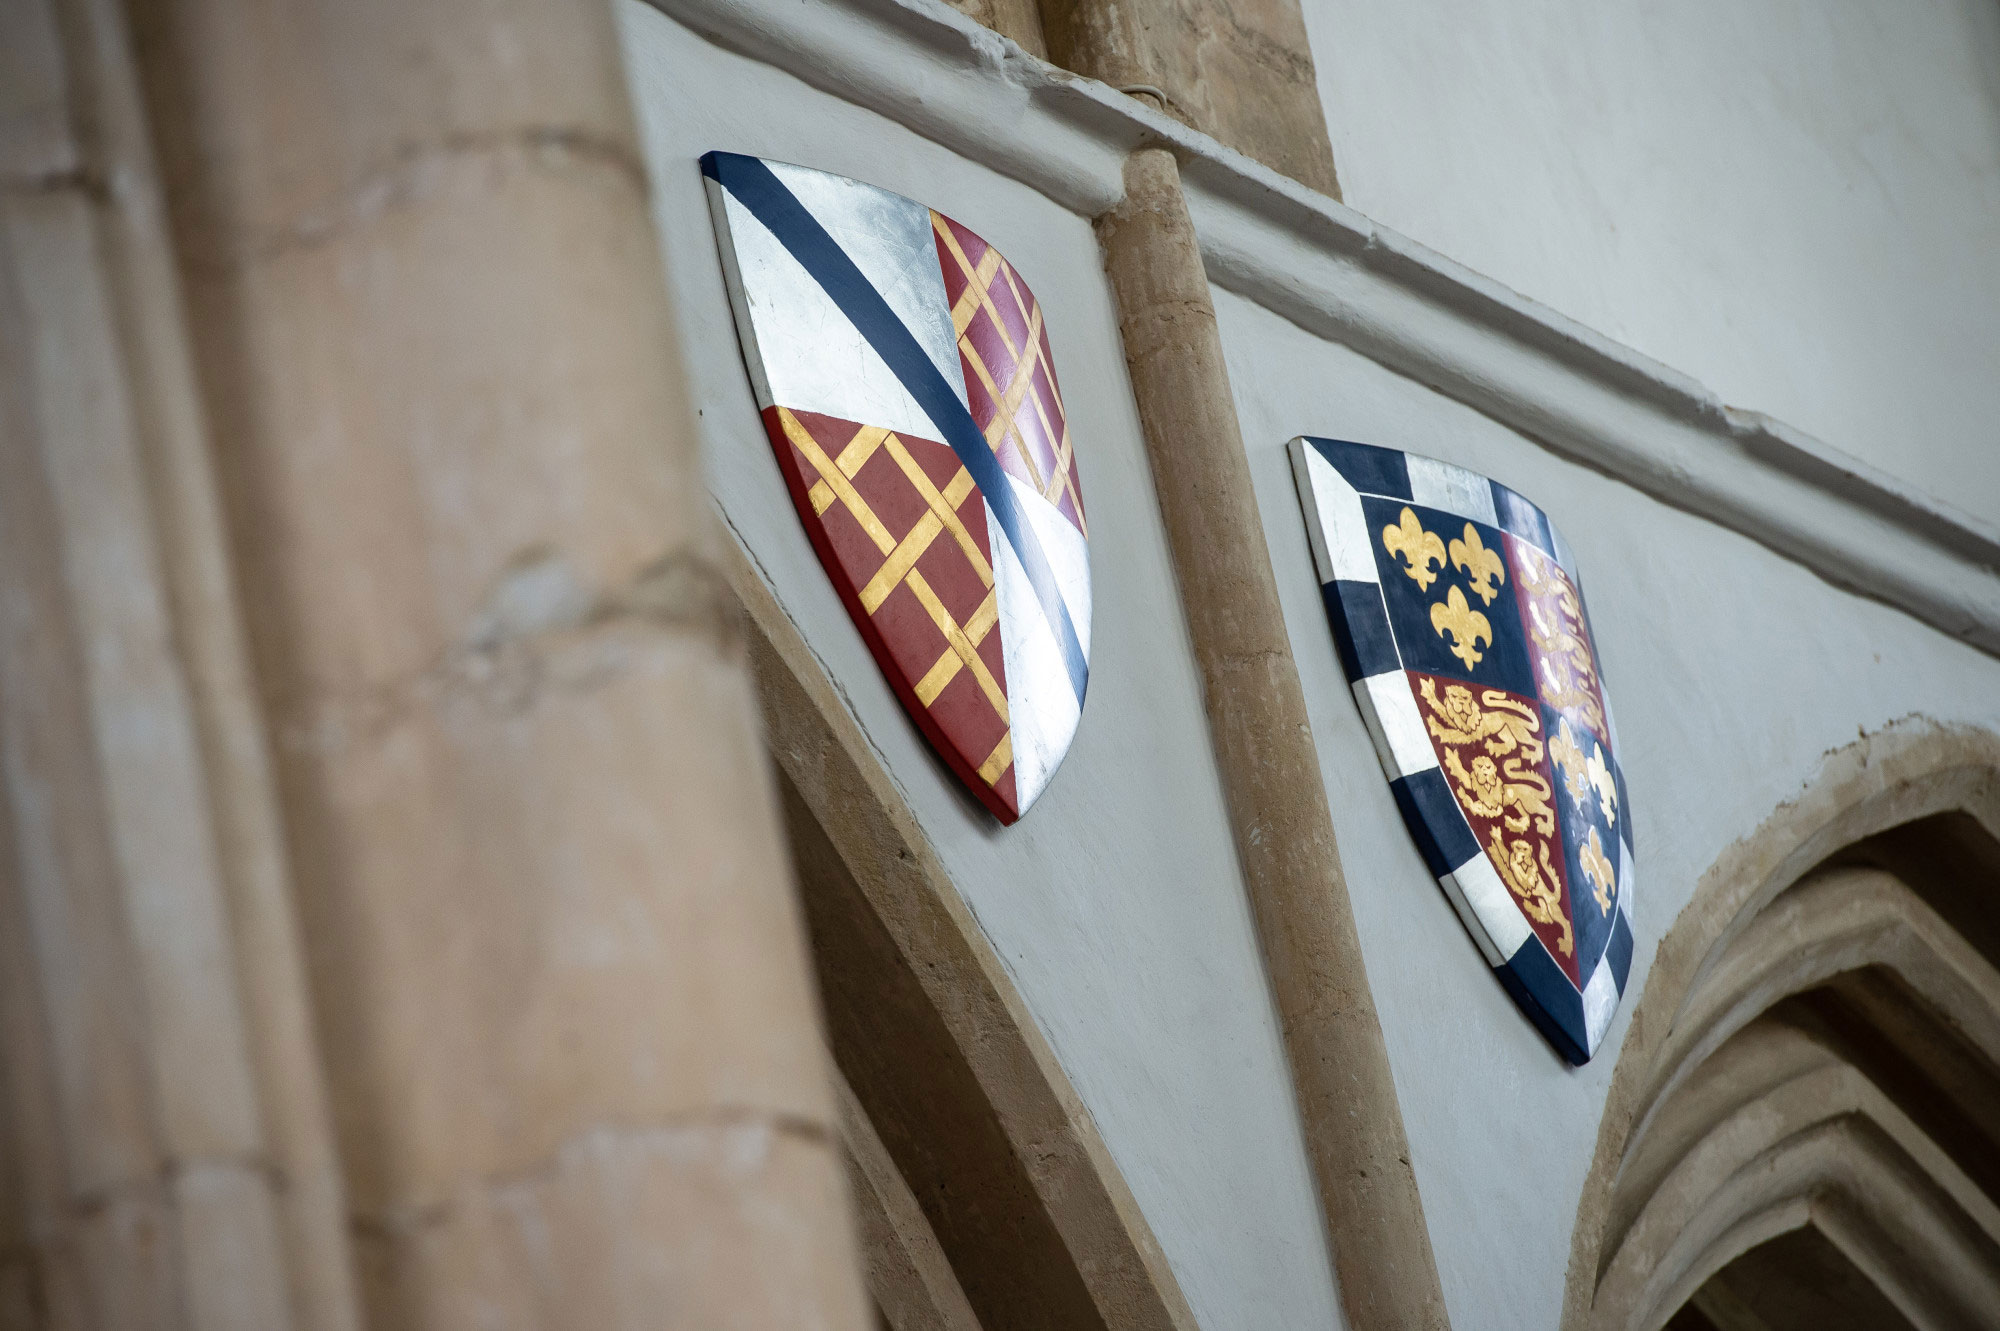 Forthinghay Church crests wall